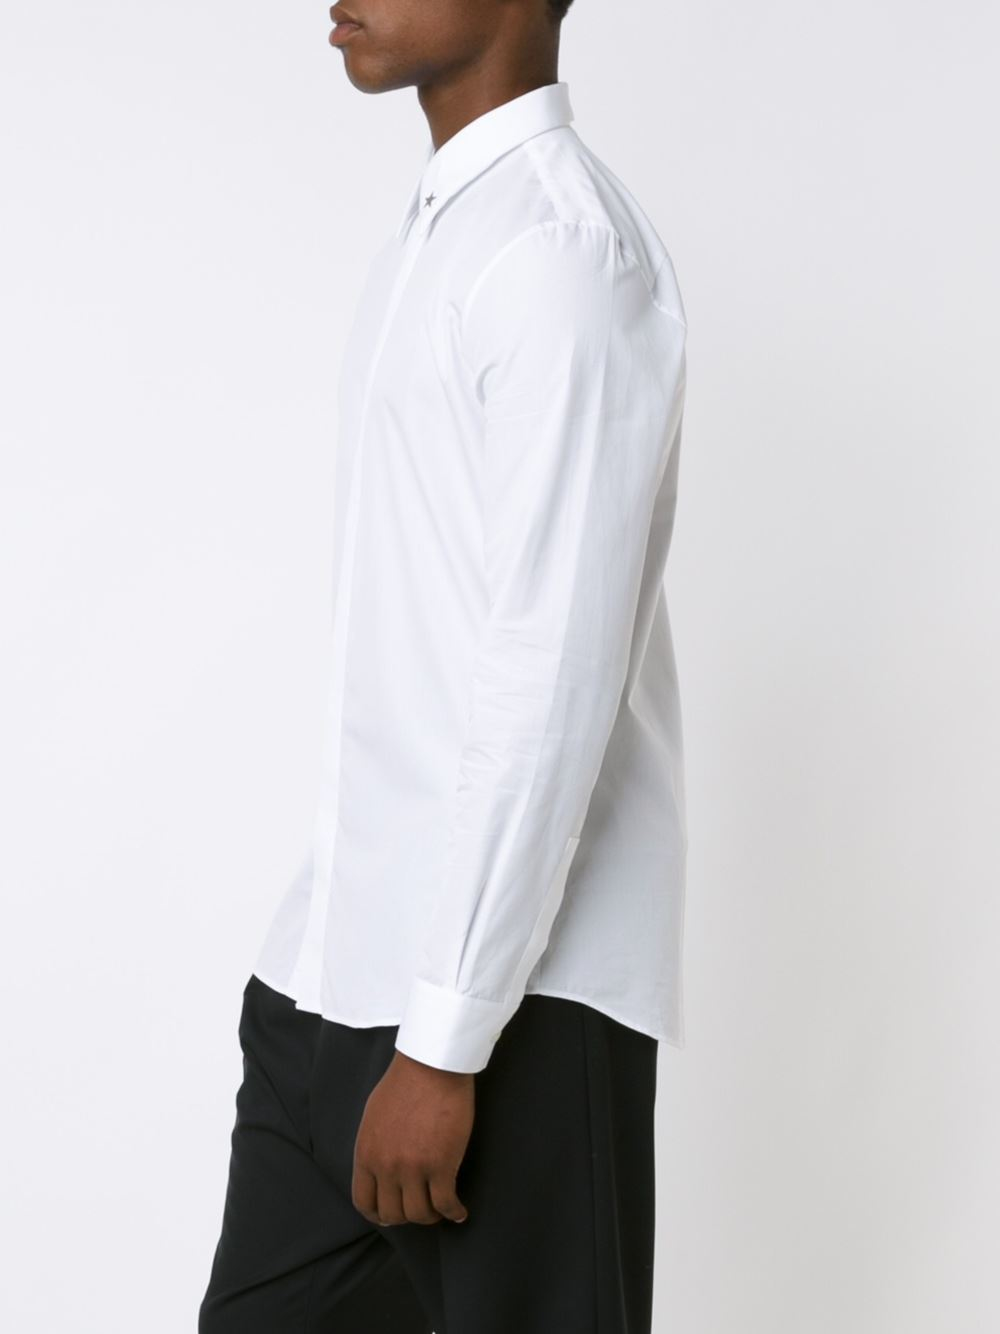 Givenchy star collar tip shirt in black for men lyst for Givenchy 5 star shirt